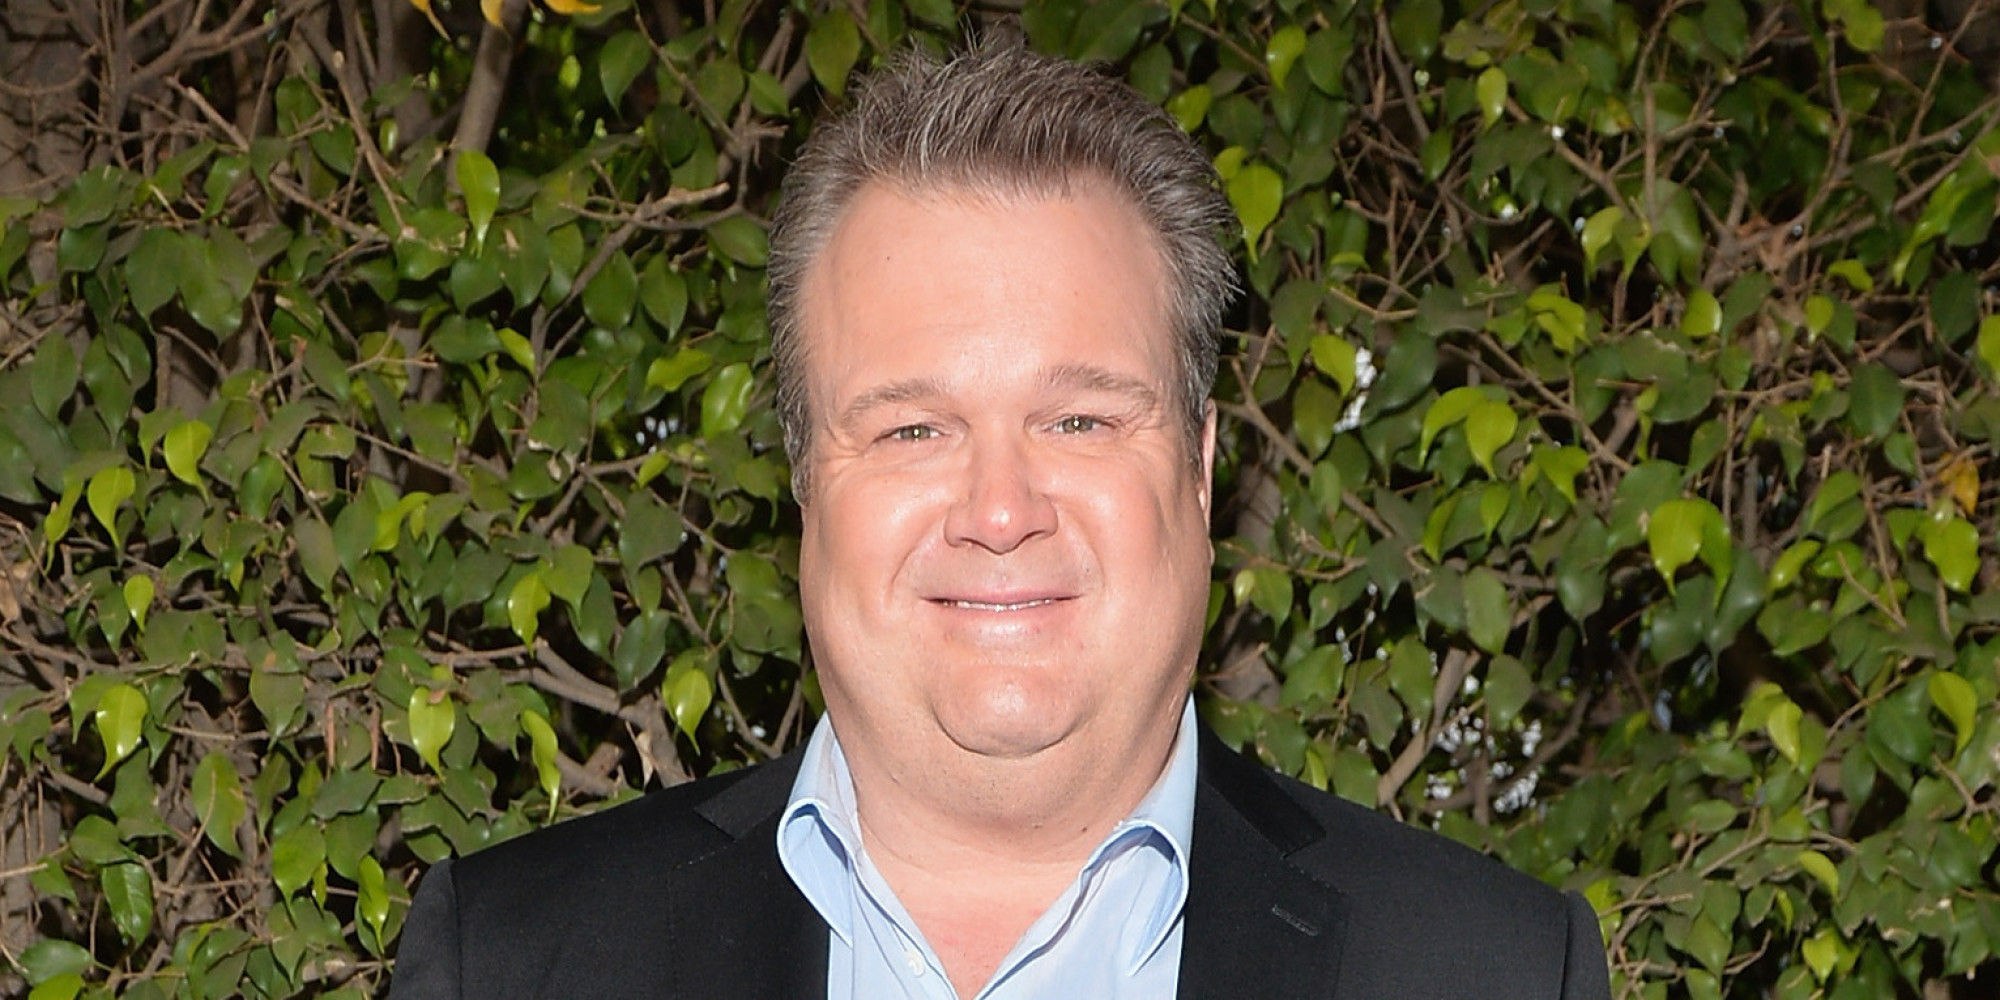 Why 39 Modern Family 39 Star Eric Stonestreet Refused A Photo